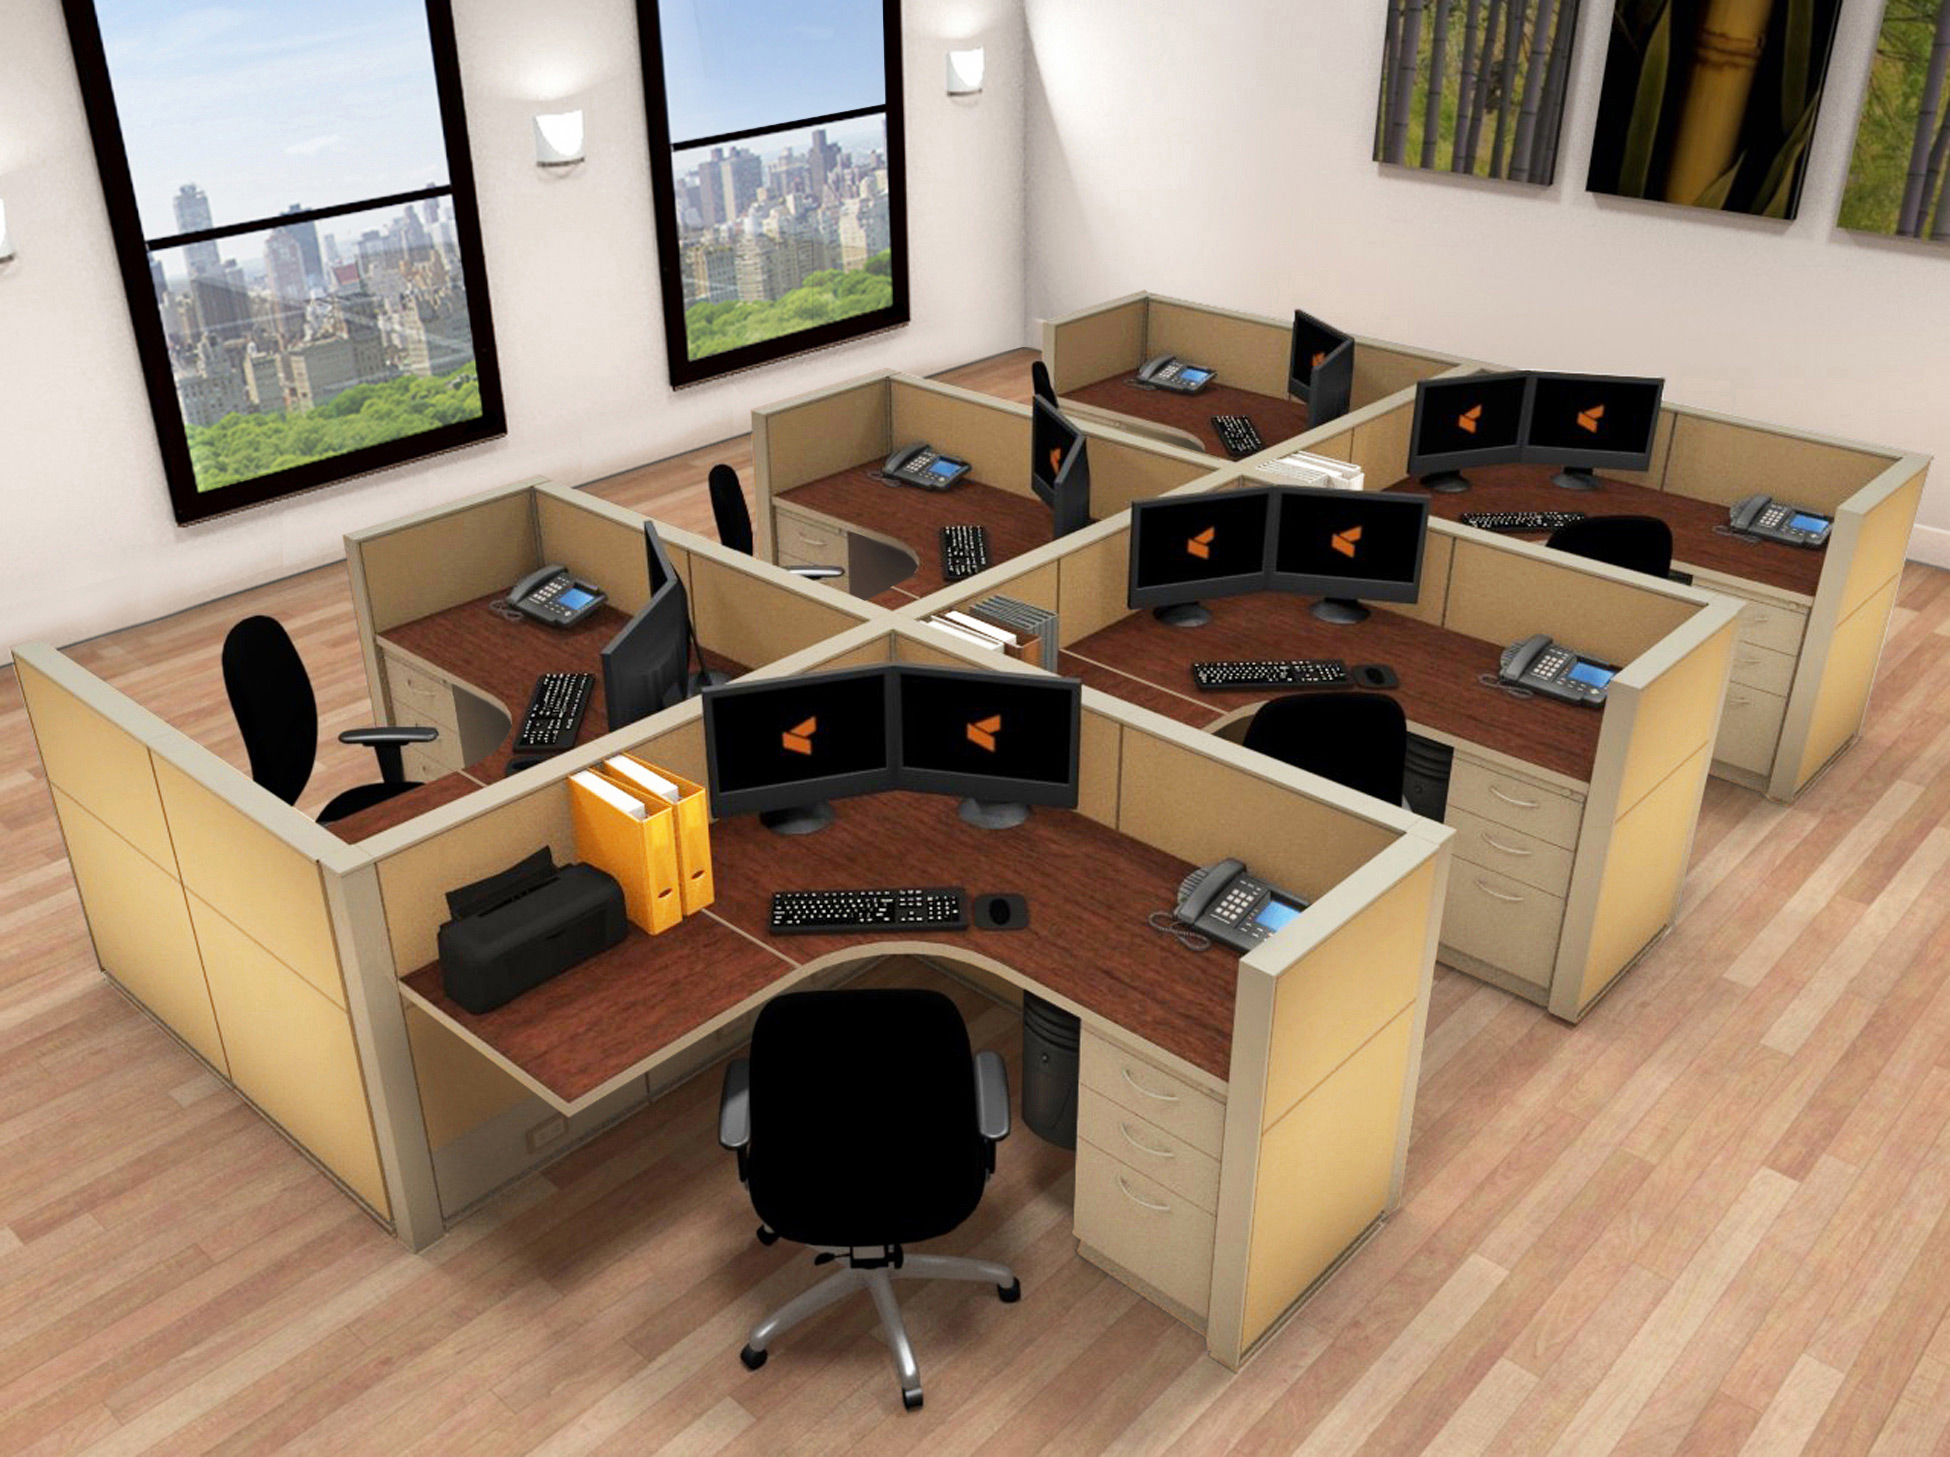 5x5 Cubicle Workstations from AIS - 6 Pack Cluster